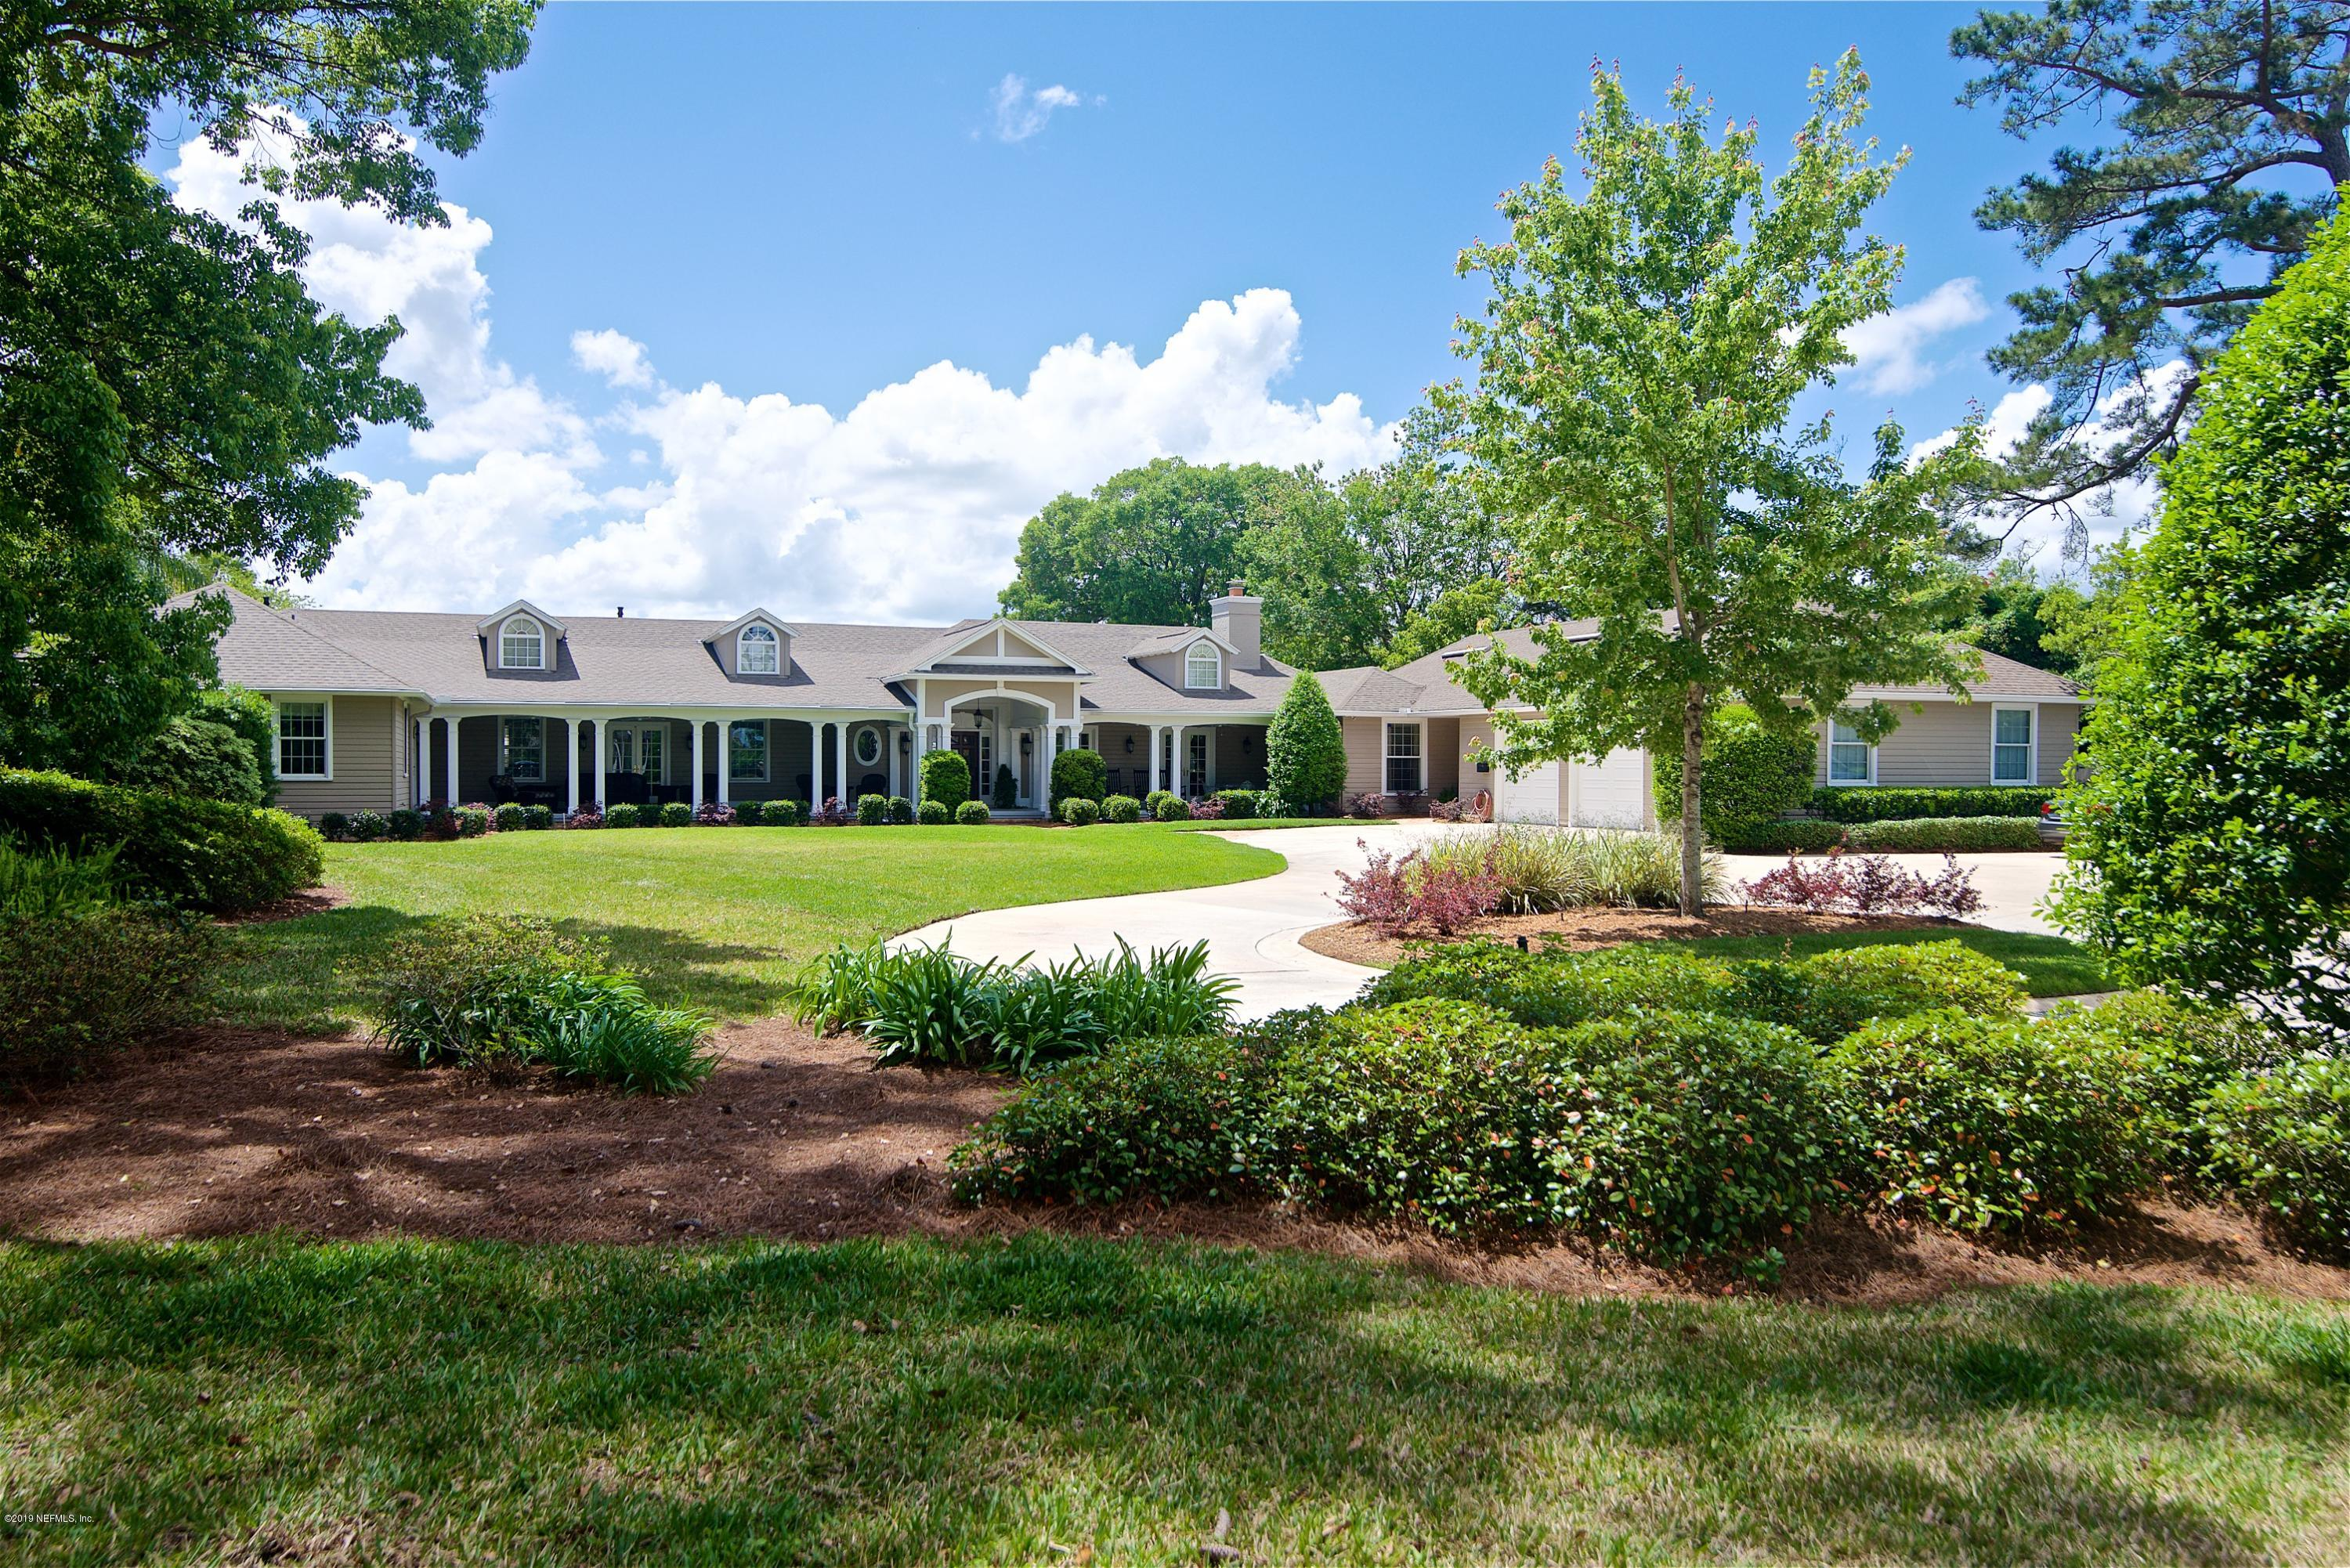 5062 YACHT CLUB, JACKSONVILLE, FLORIDA 32210, 4 Bedrooms Bedrooms, ,4 BathroomsBathrooms,Residential - single family,For sale,YACHT CLUB,990361